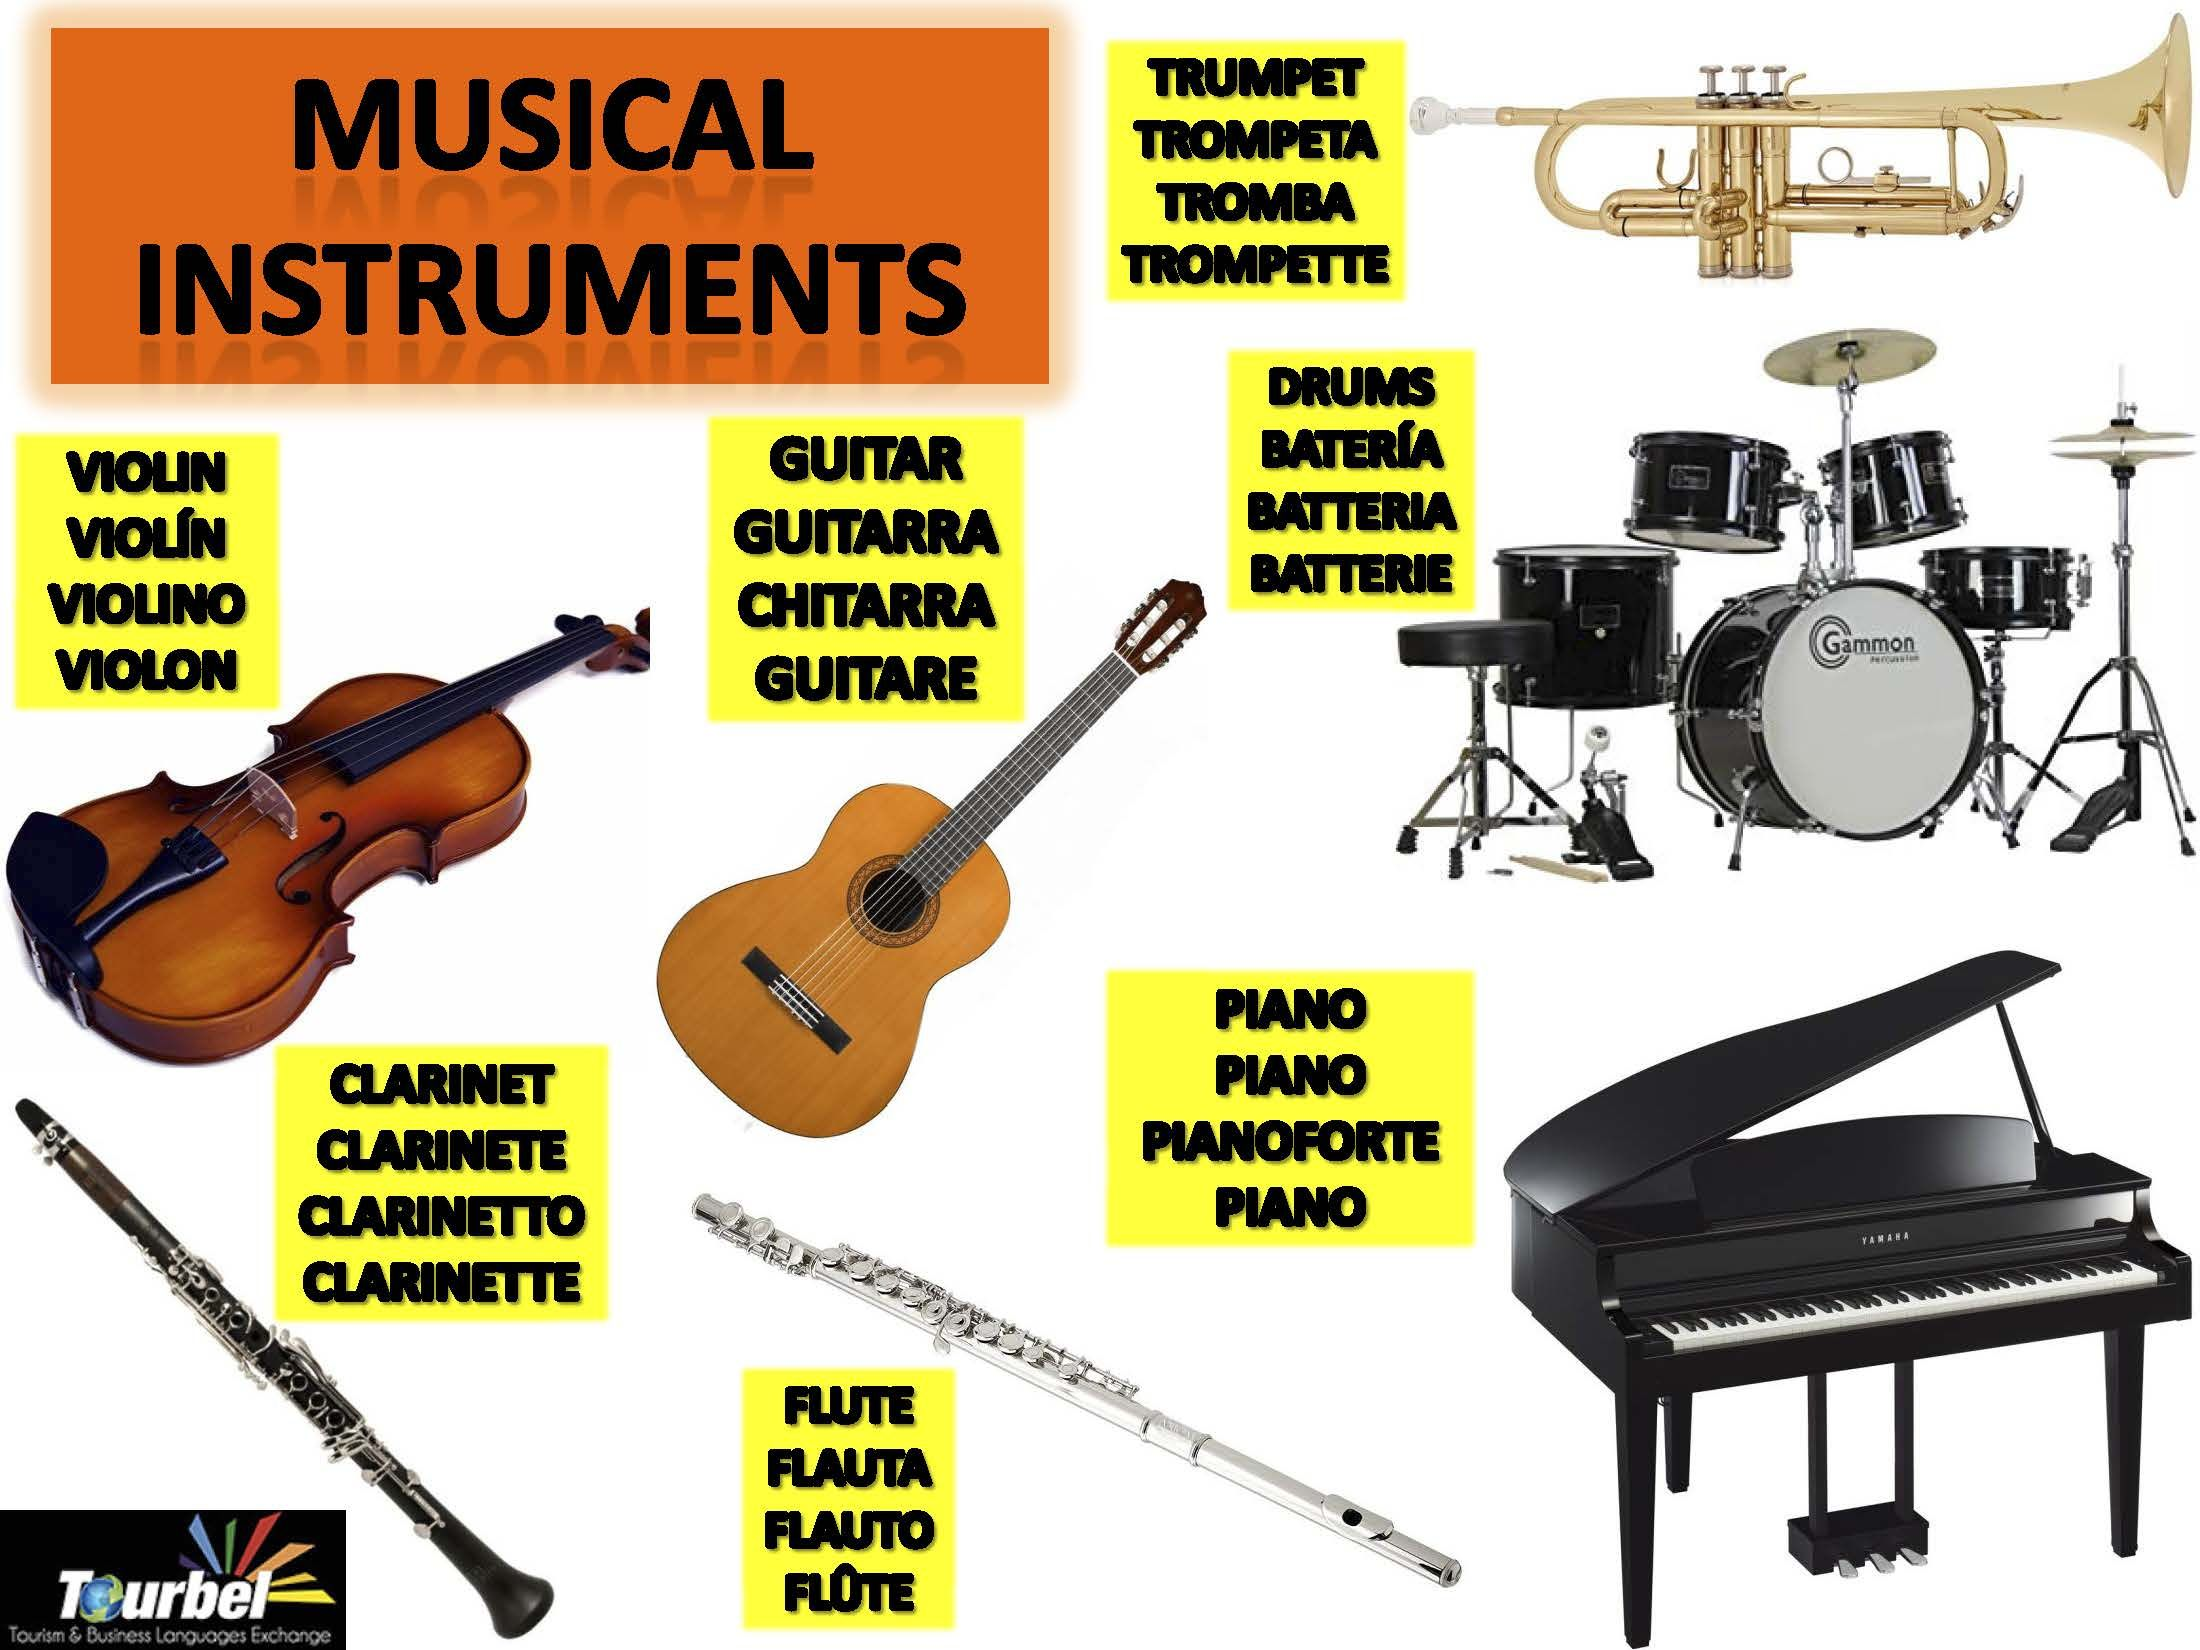 Today We Share Vocabulary Of Musical Instruments In English Spanish Italian And French Http Tourbel Com Lang En Hoy Compa Musicales Musical Vocabulario